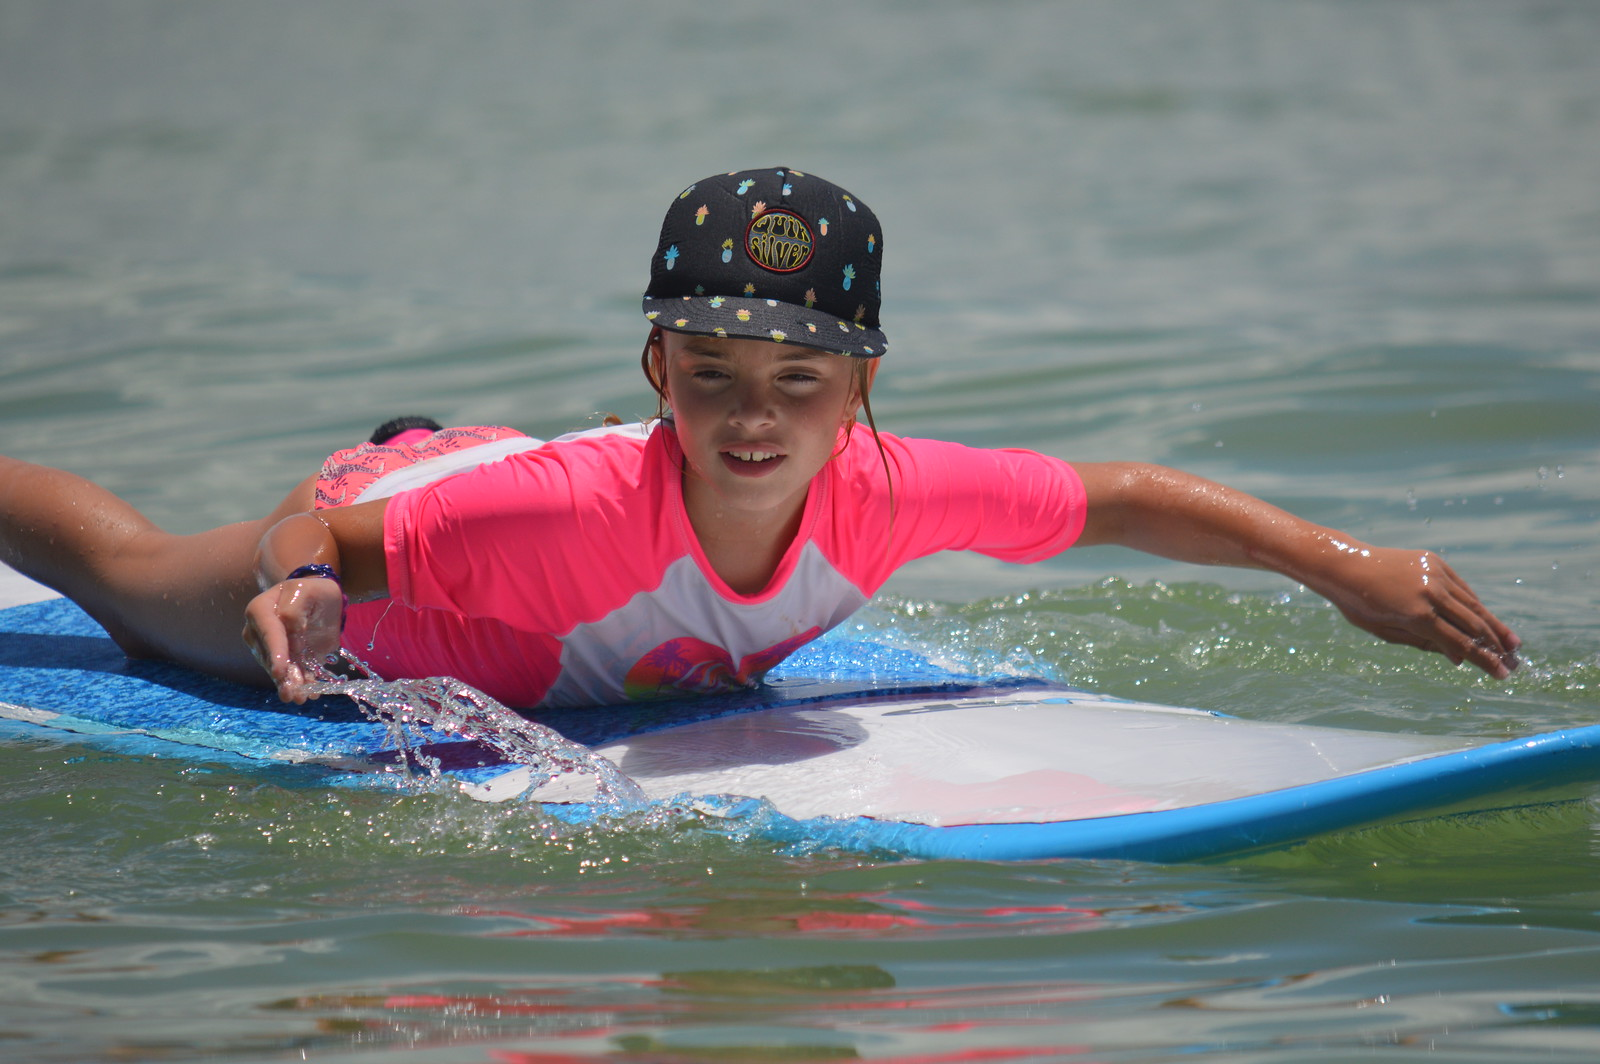 We ended the week with an exciting surf paddling race.